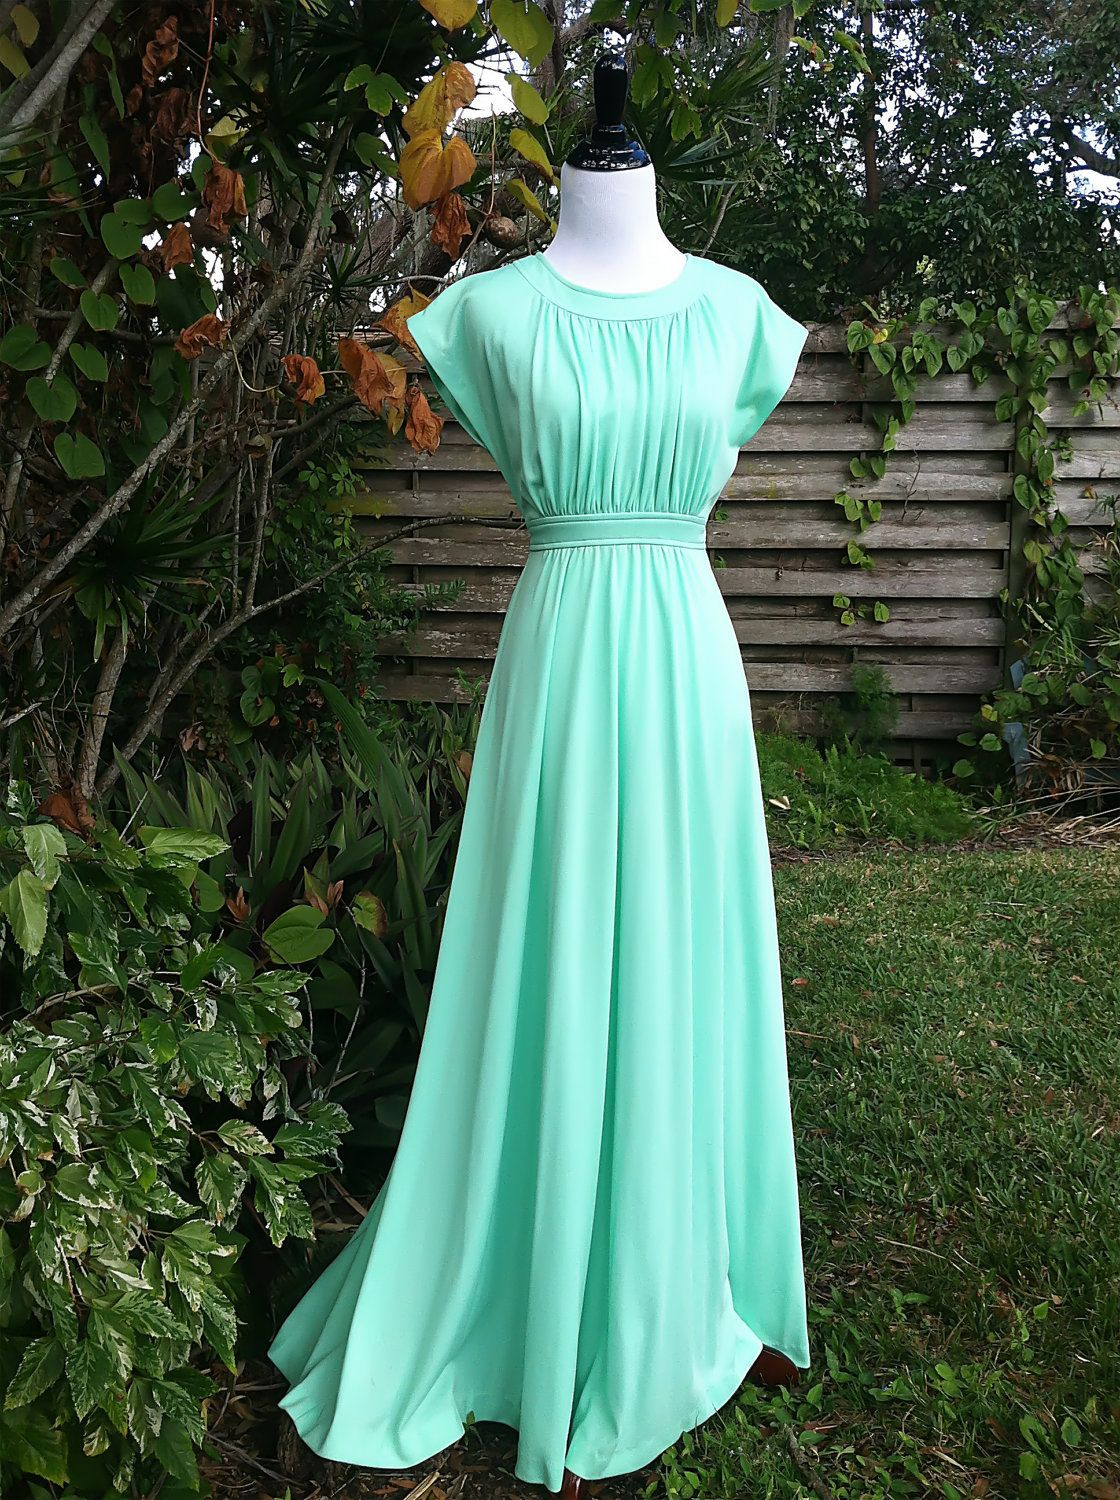 Vintage dress1970s maxi dressmint gown1970s gownmint colored vintage dress1970s maxi dressmint gown1970s gownmint colored dressvintage dress ombrellifo Gallery